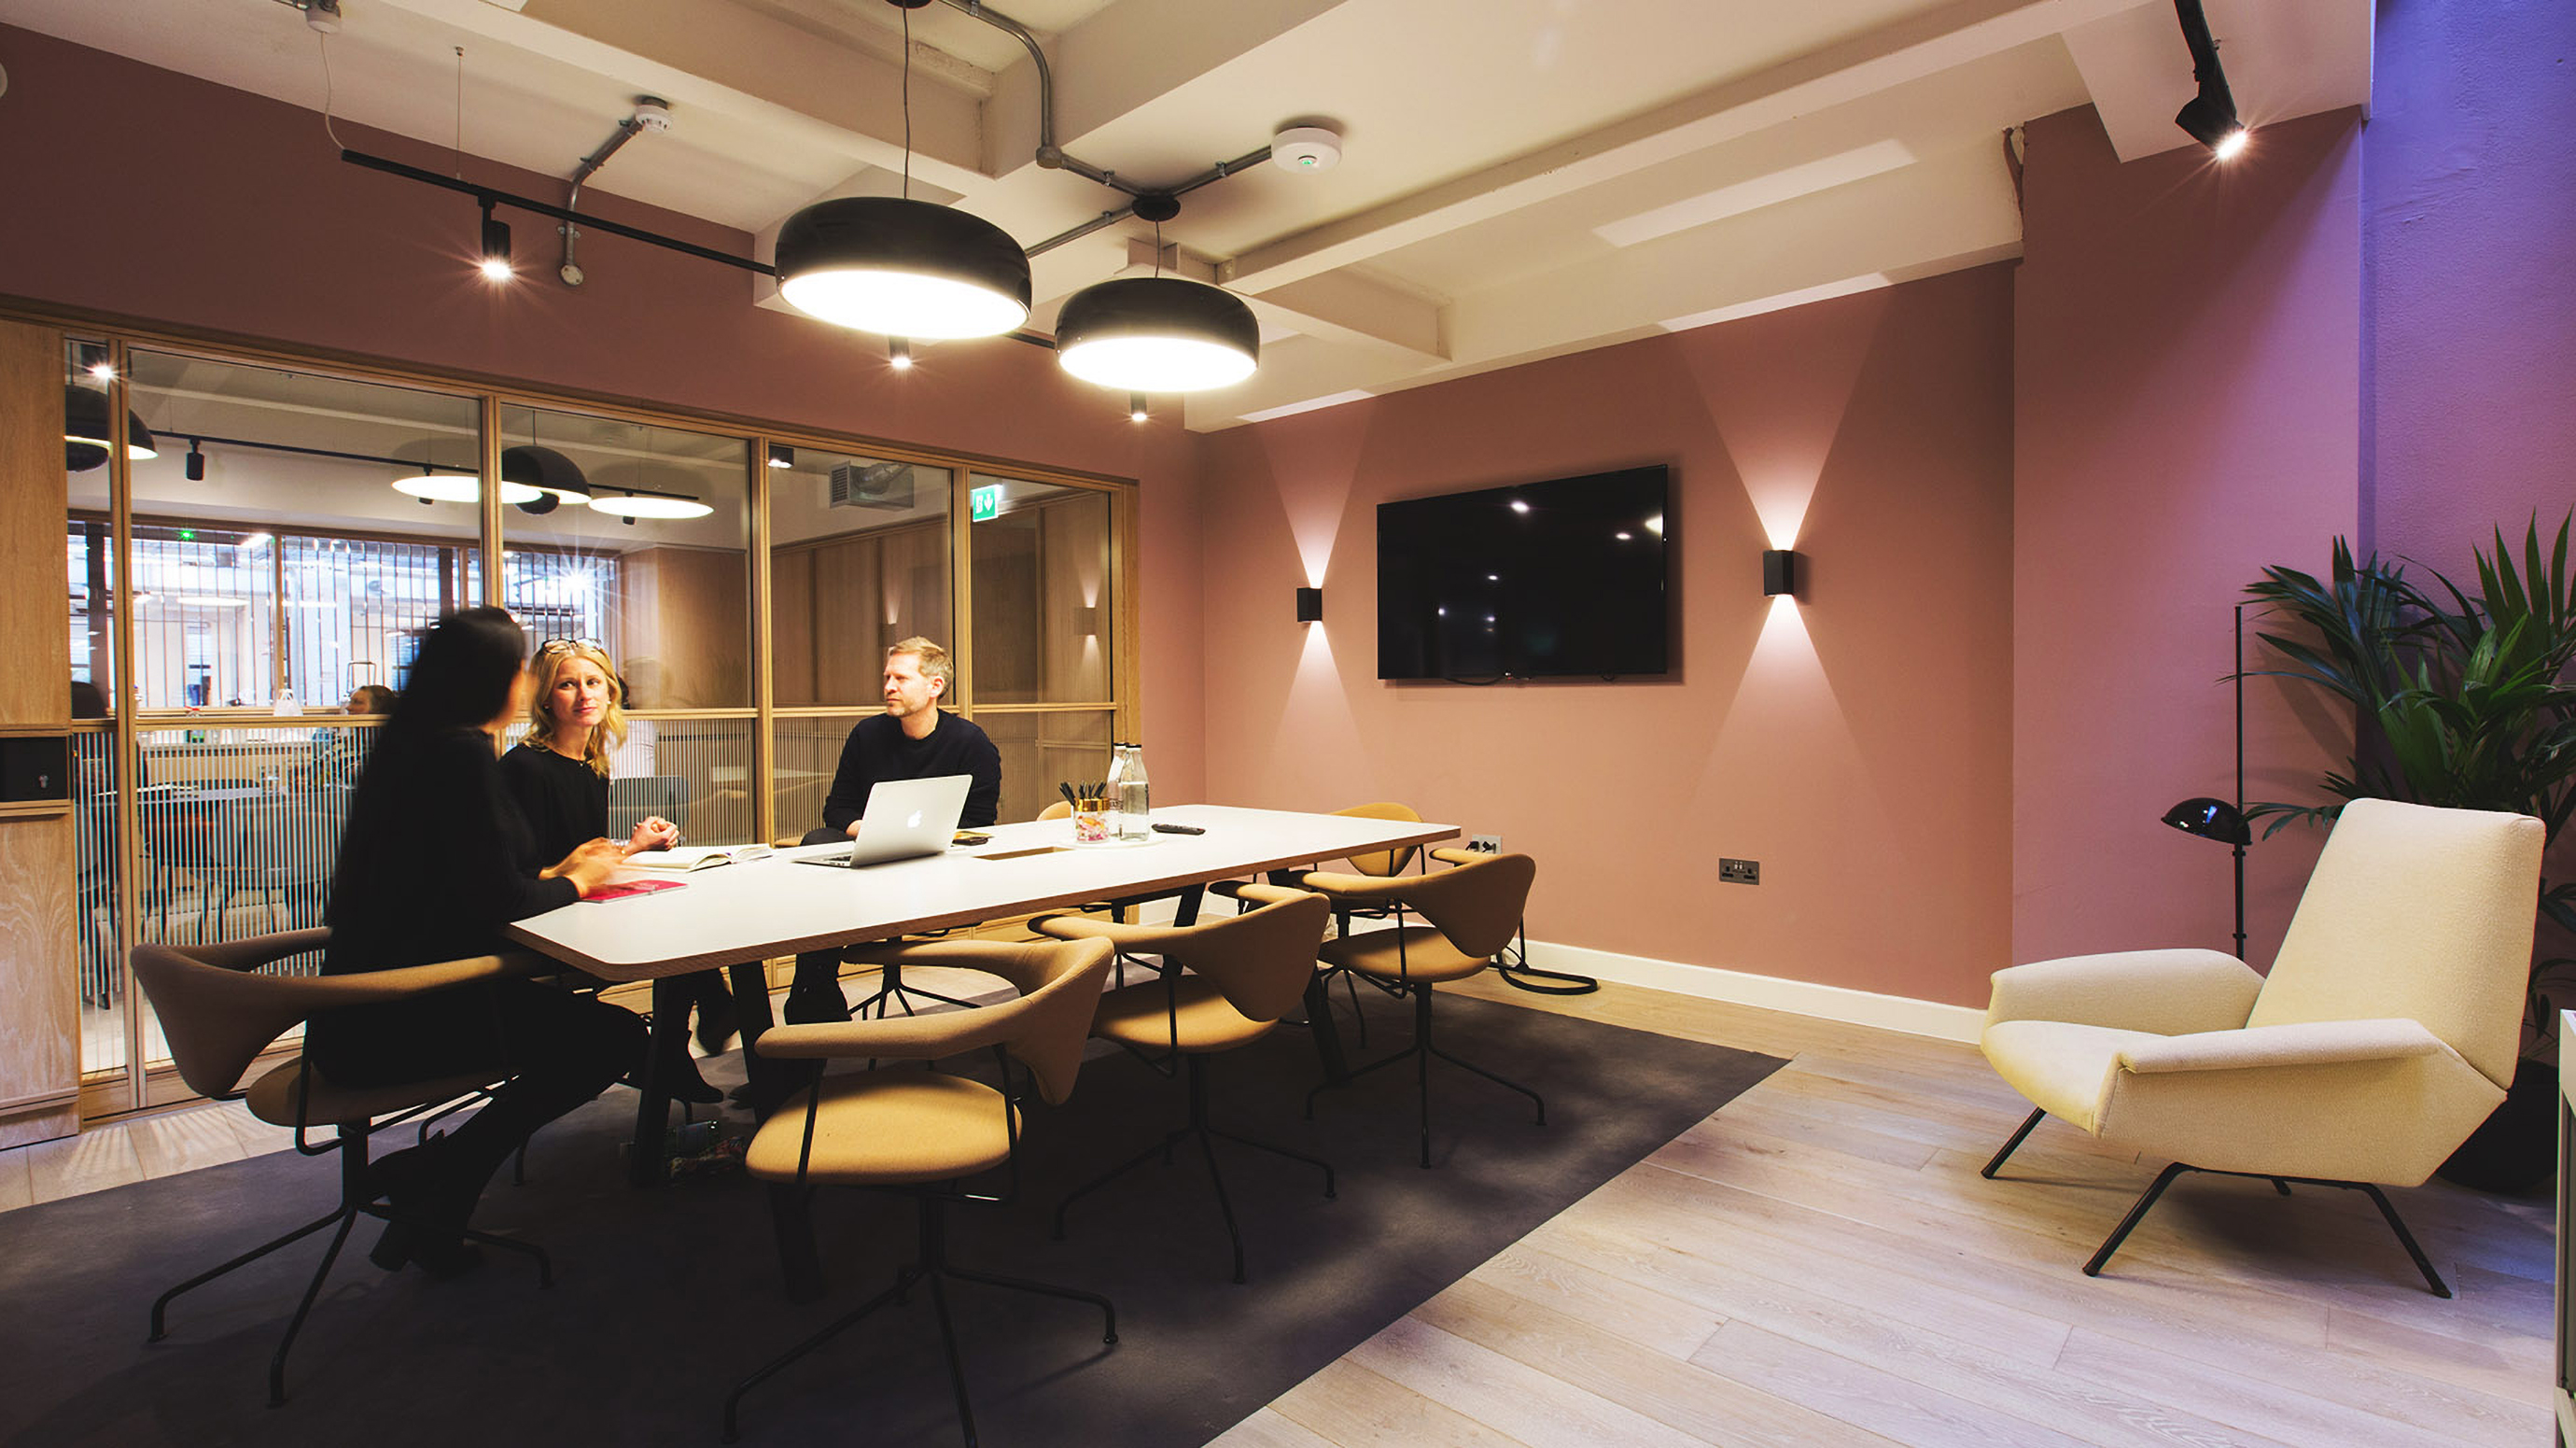 Medium meeting room with long white table and pale chairs and pink walls and tv screen at TOG building Smiths Building